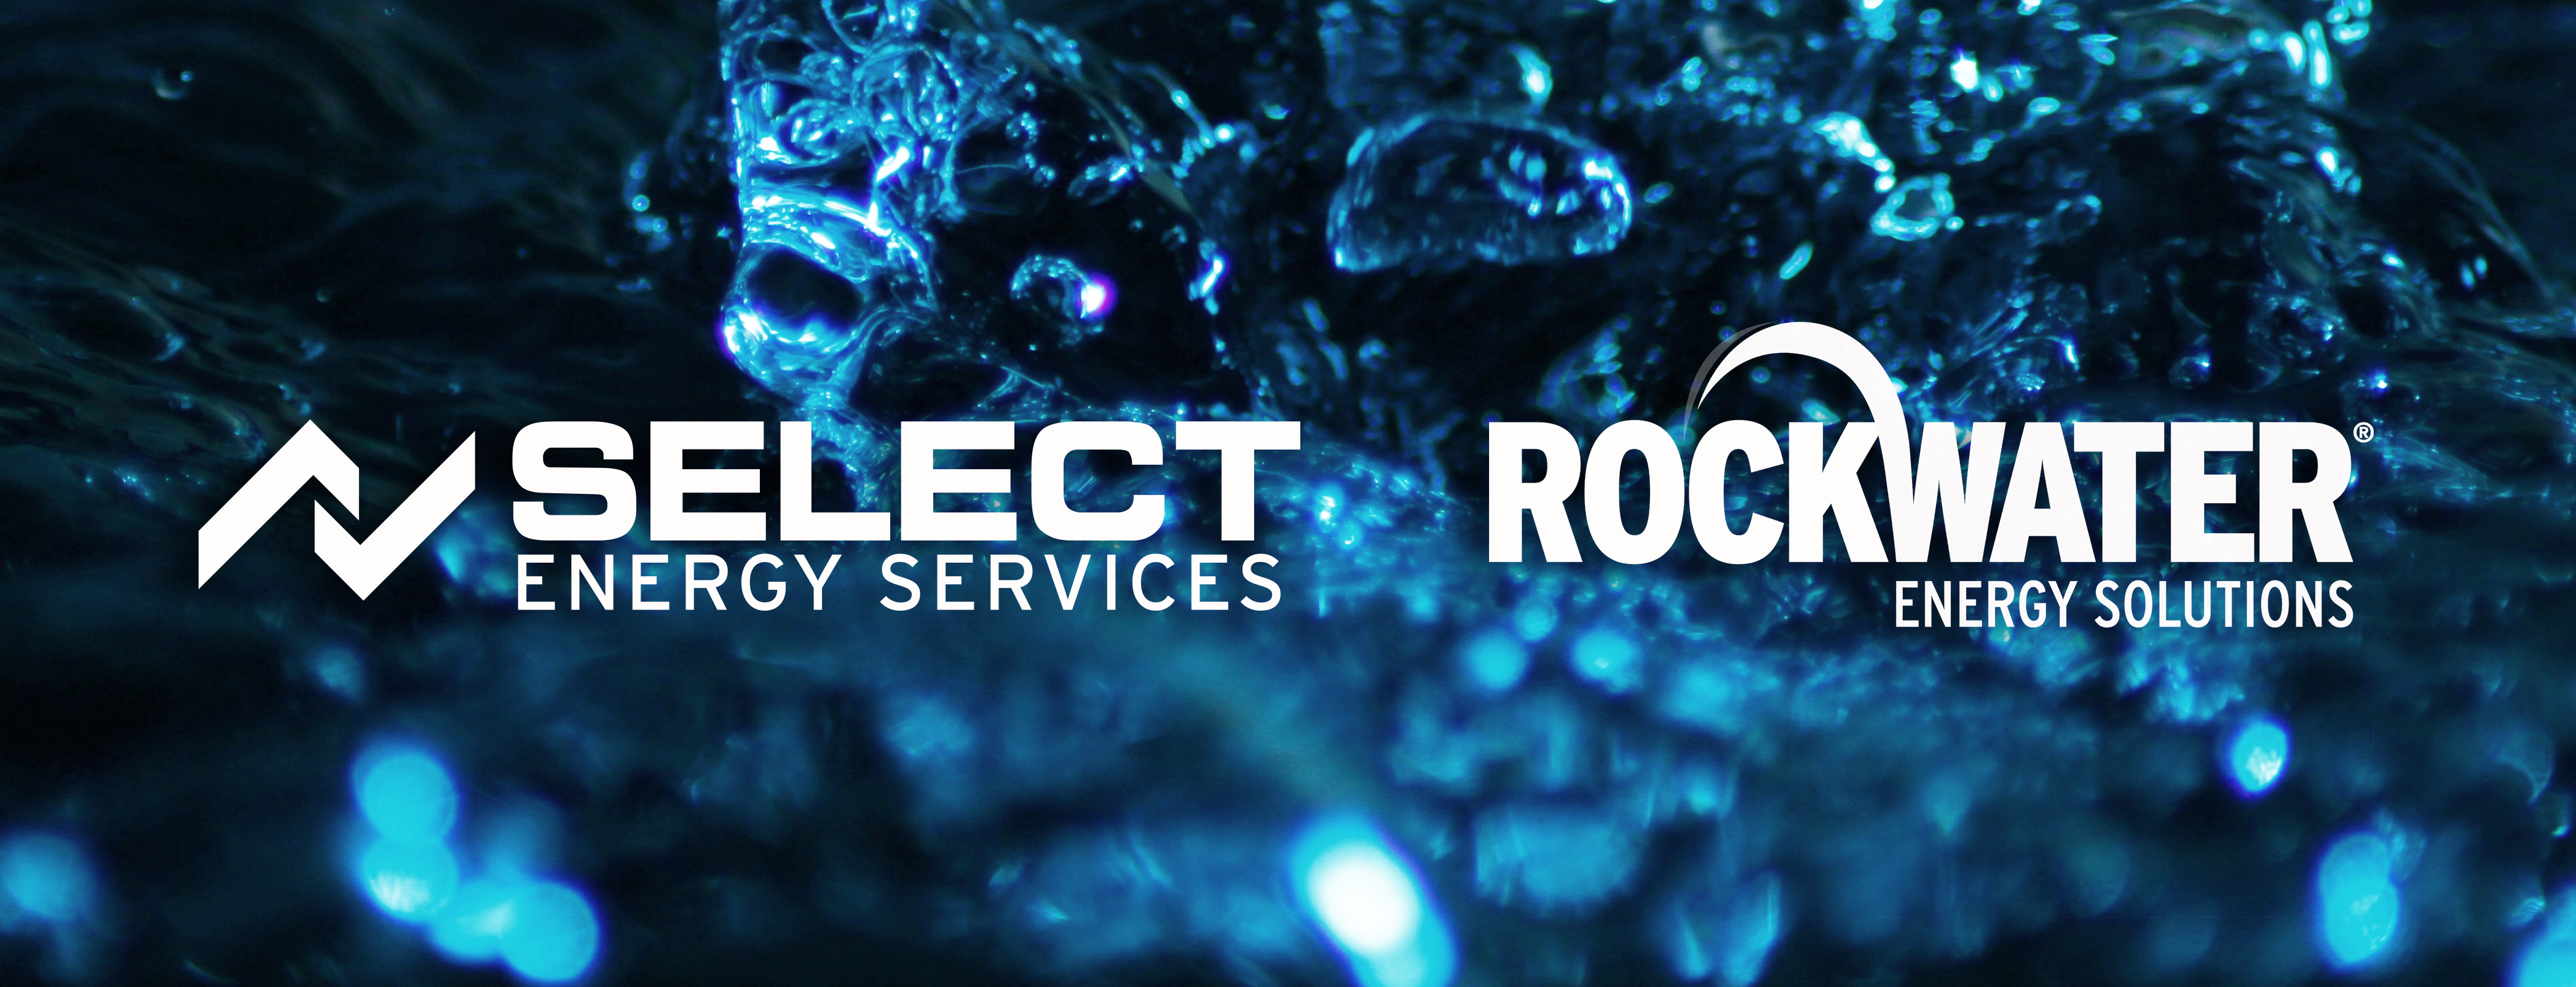 Select Energy Services And Rockwater Energy Solutions